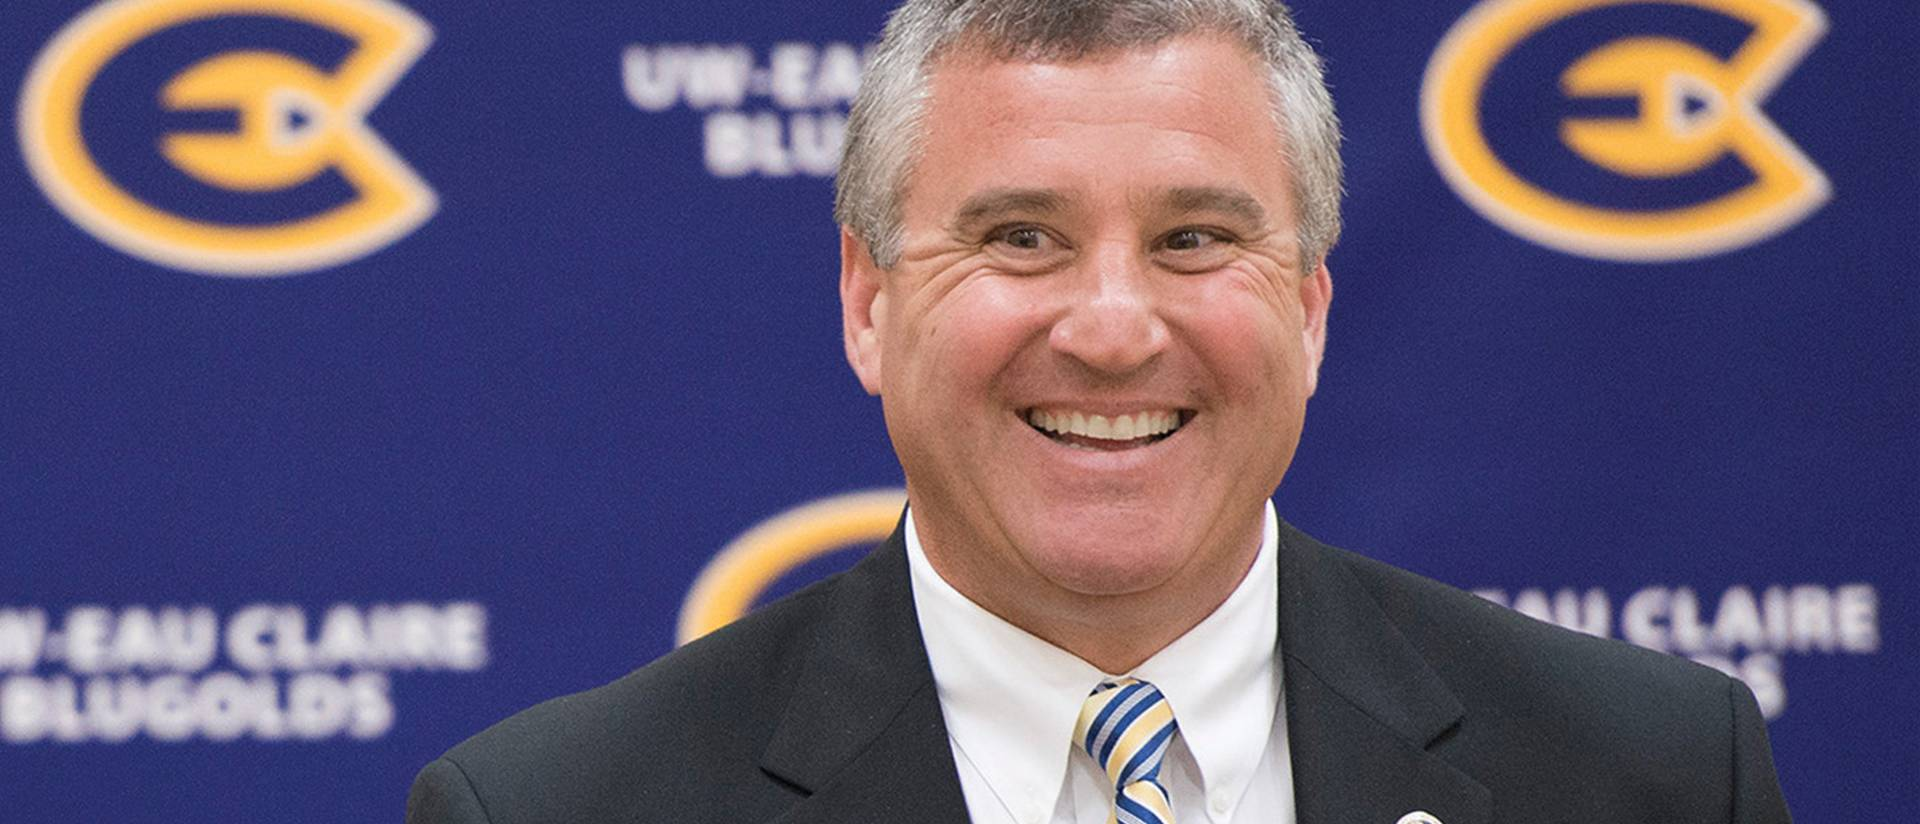 Dan Schumacher was named UW-Eau Claire's new director of athletics in May.